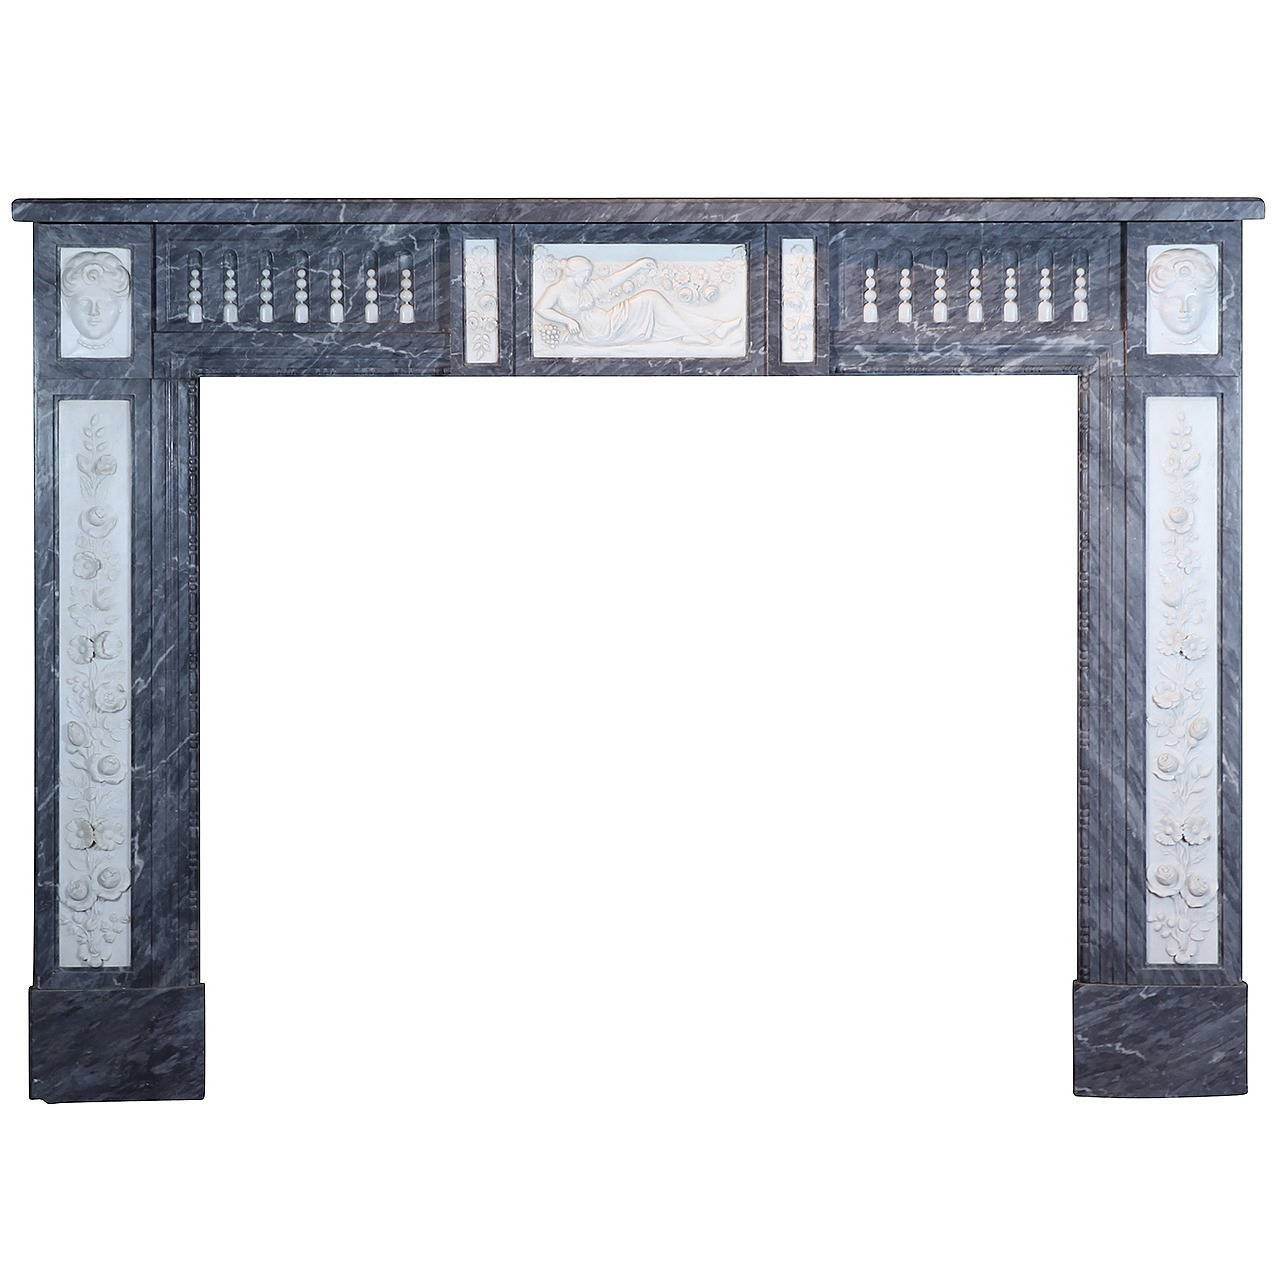 18th Century Original Antique Fireplace Mantel in Marble from Bruges